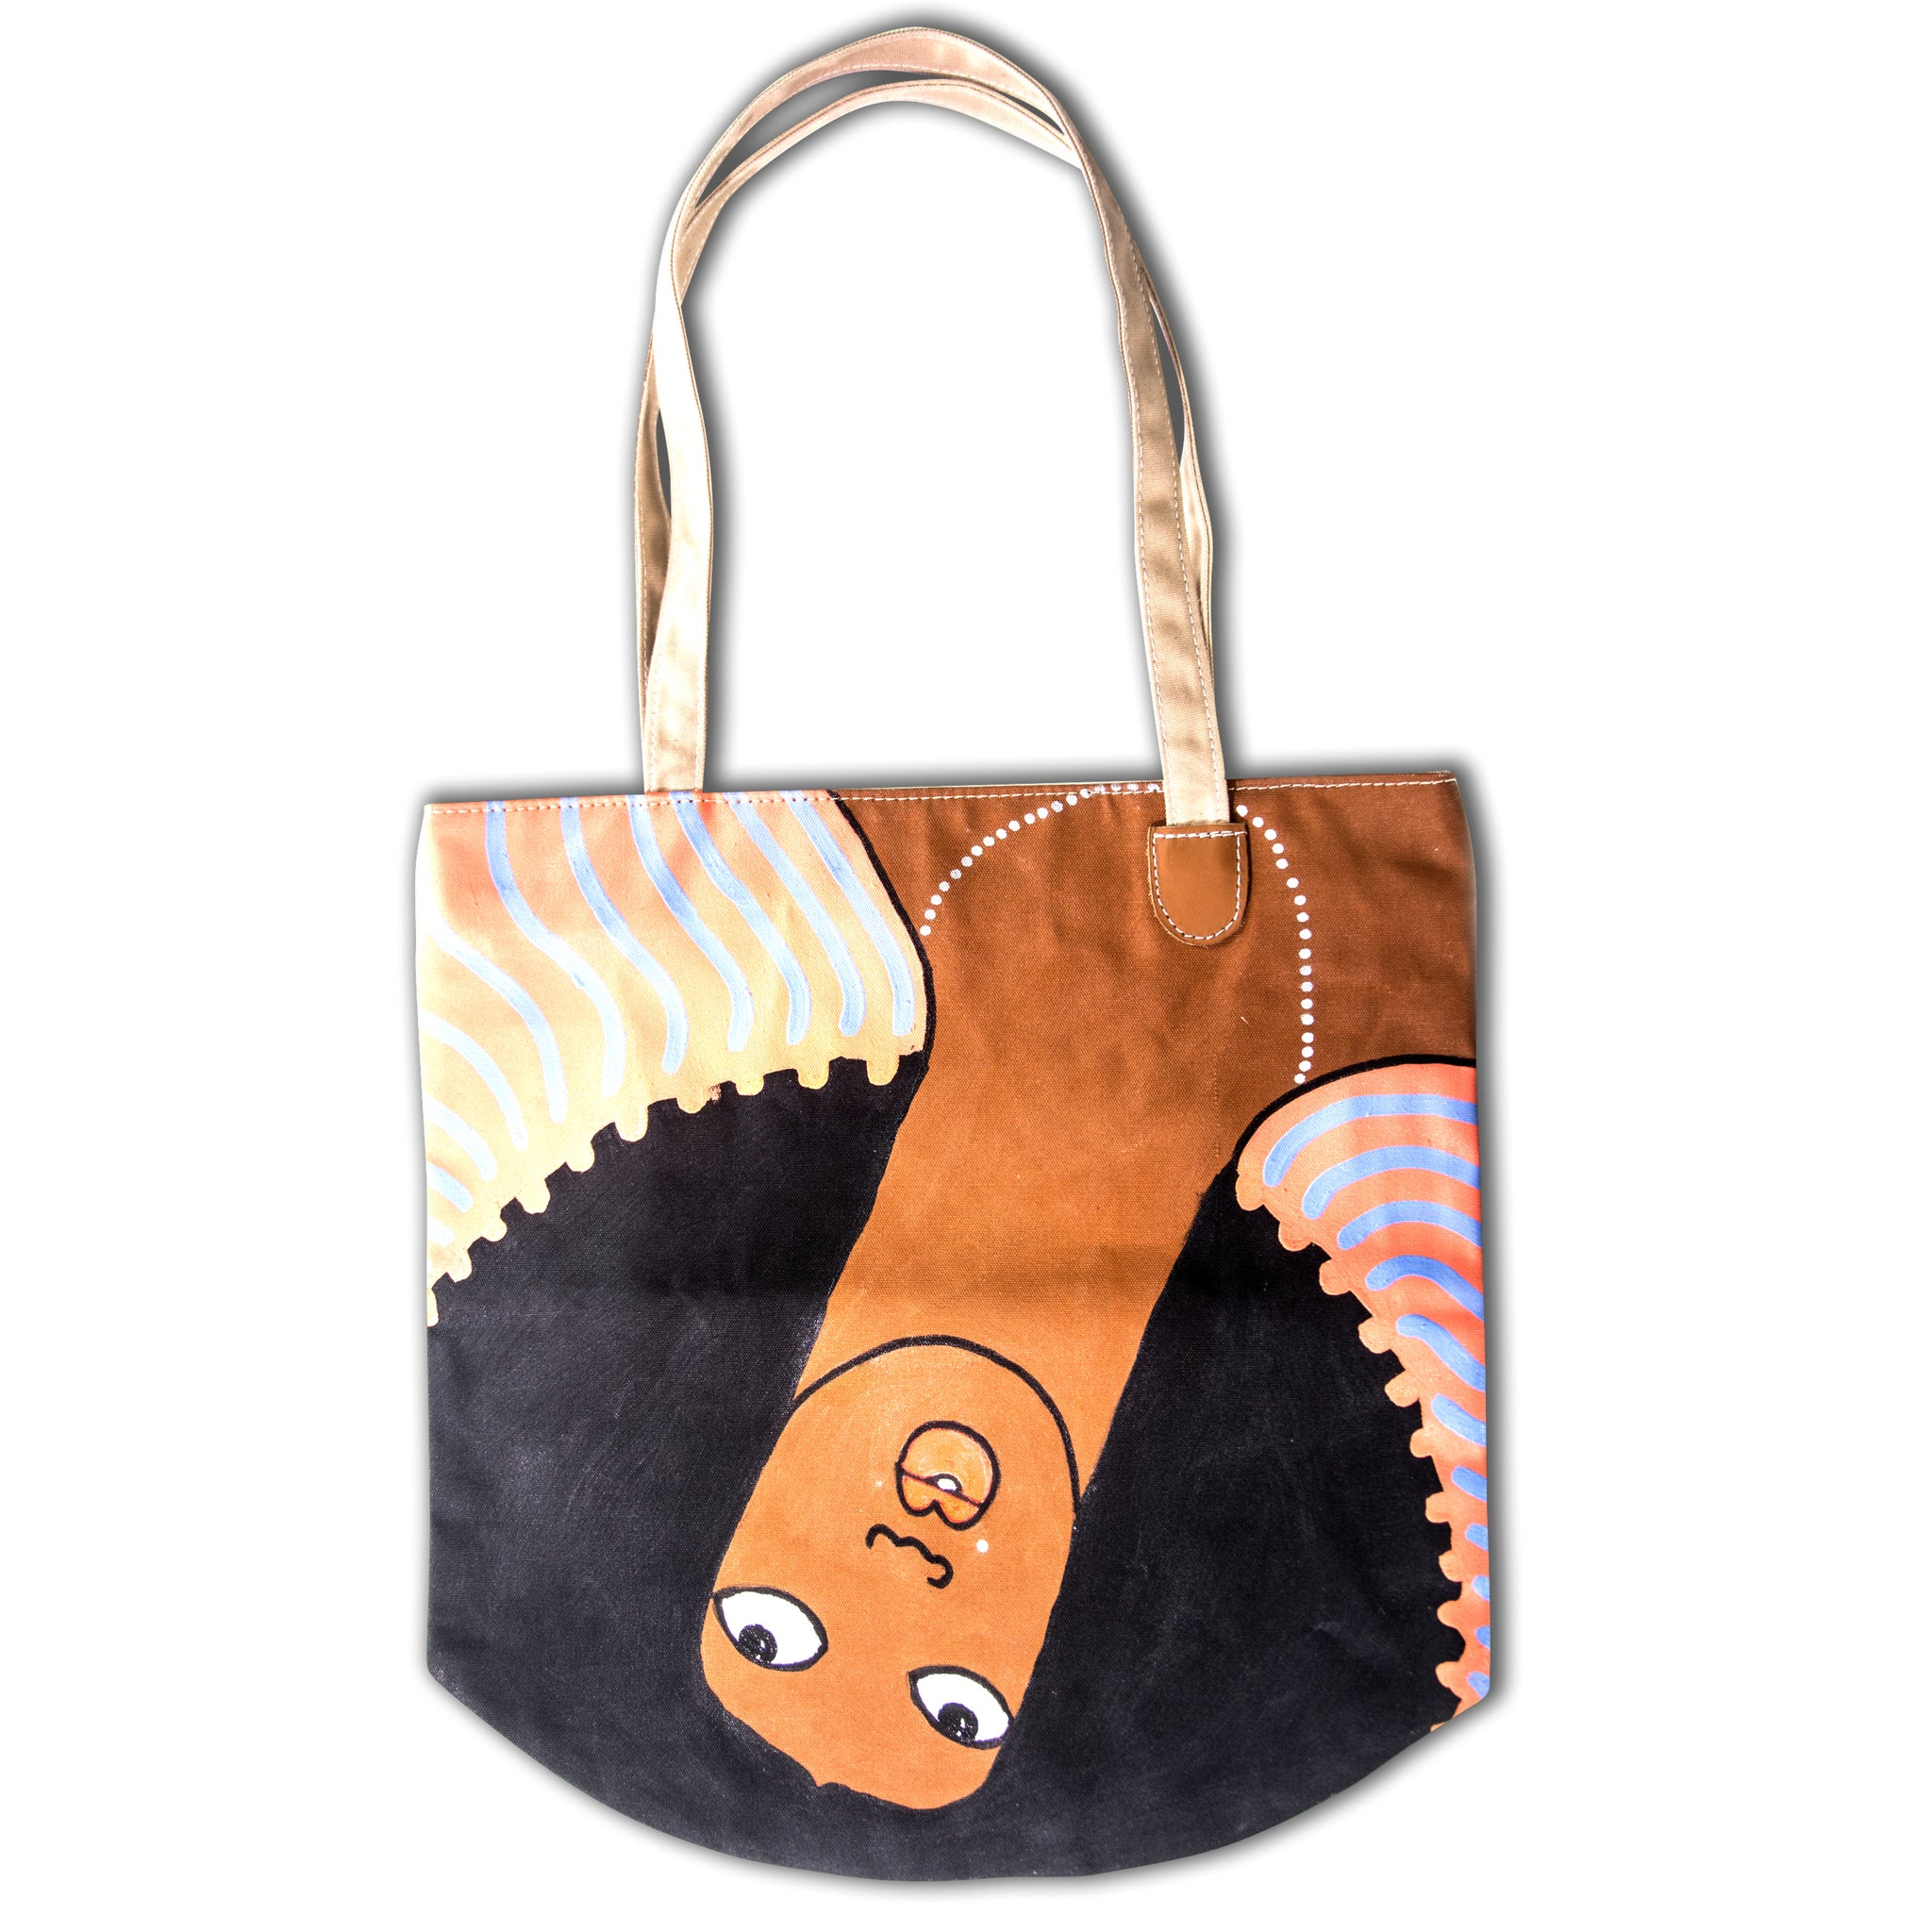 Michael Soi Art Bag tote #5 now available at Jamhuri Wear Market Boutique